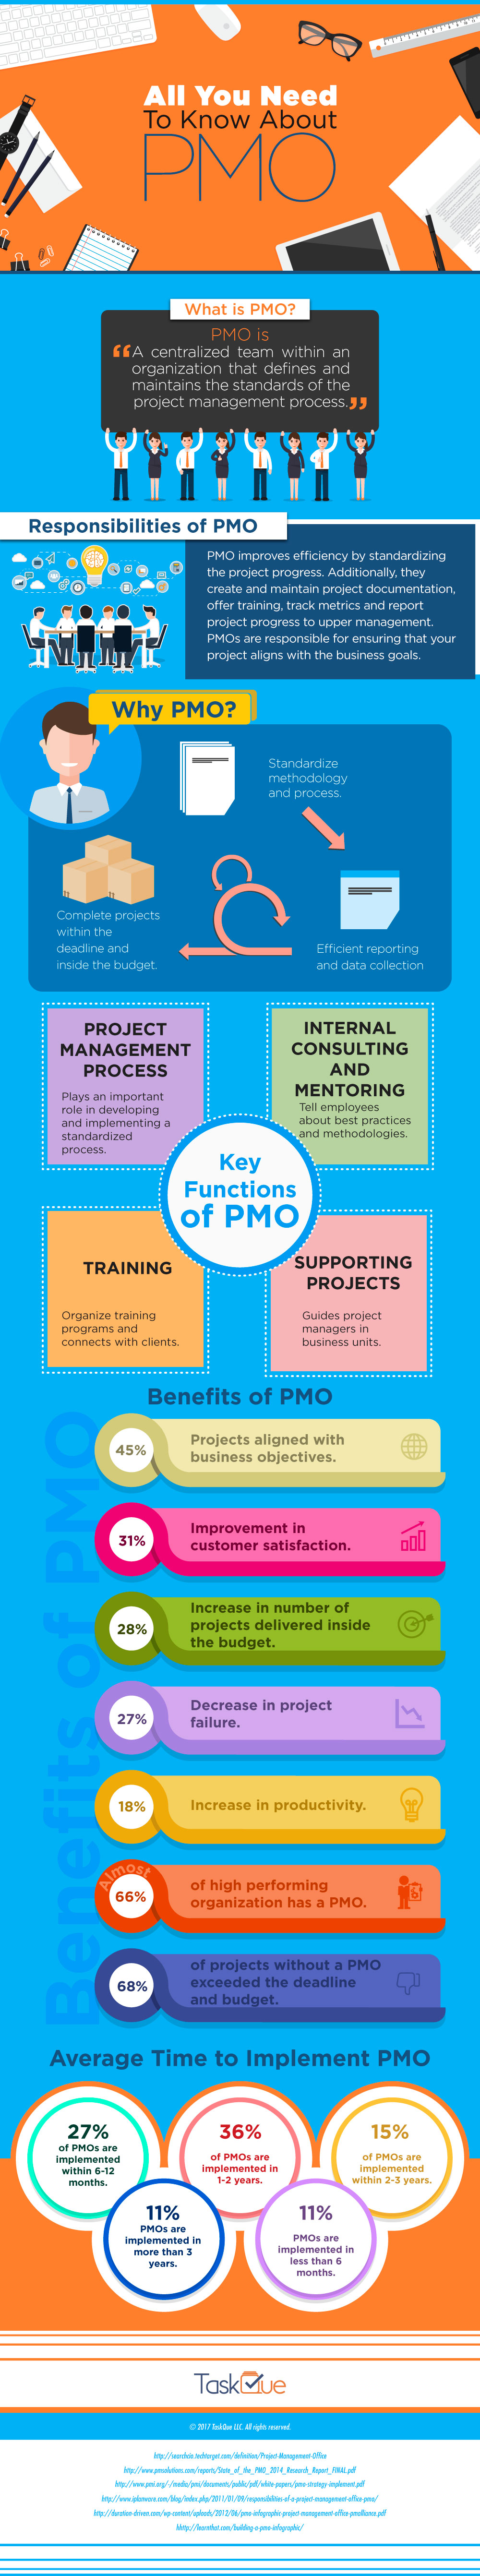 all you need to know about project management office pmo why do we need pmo how much time is required to implement a pmo in an organization answers to all these questions and much more in this infographic